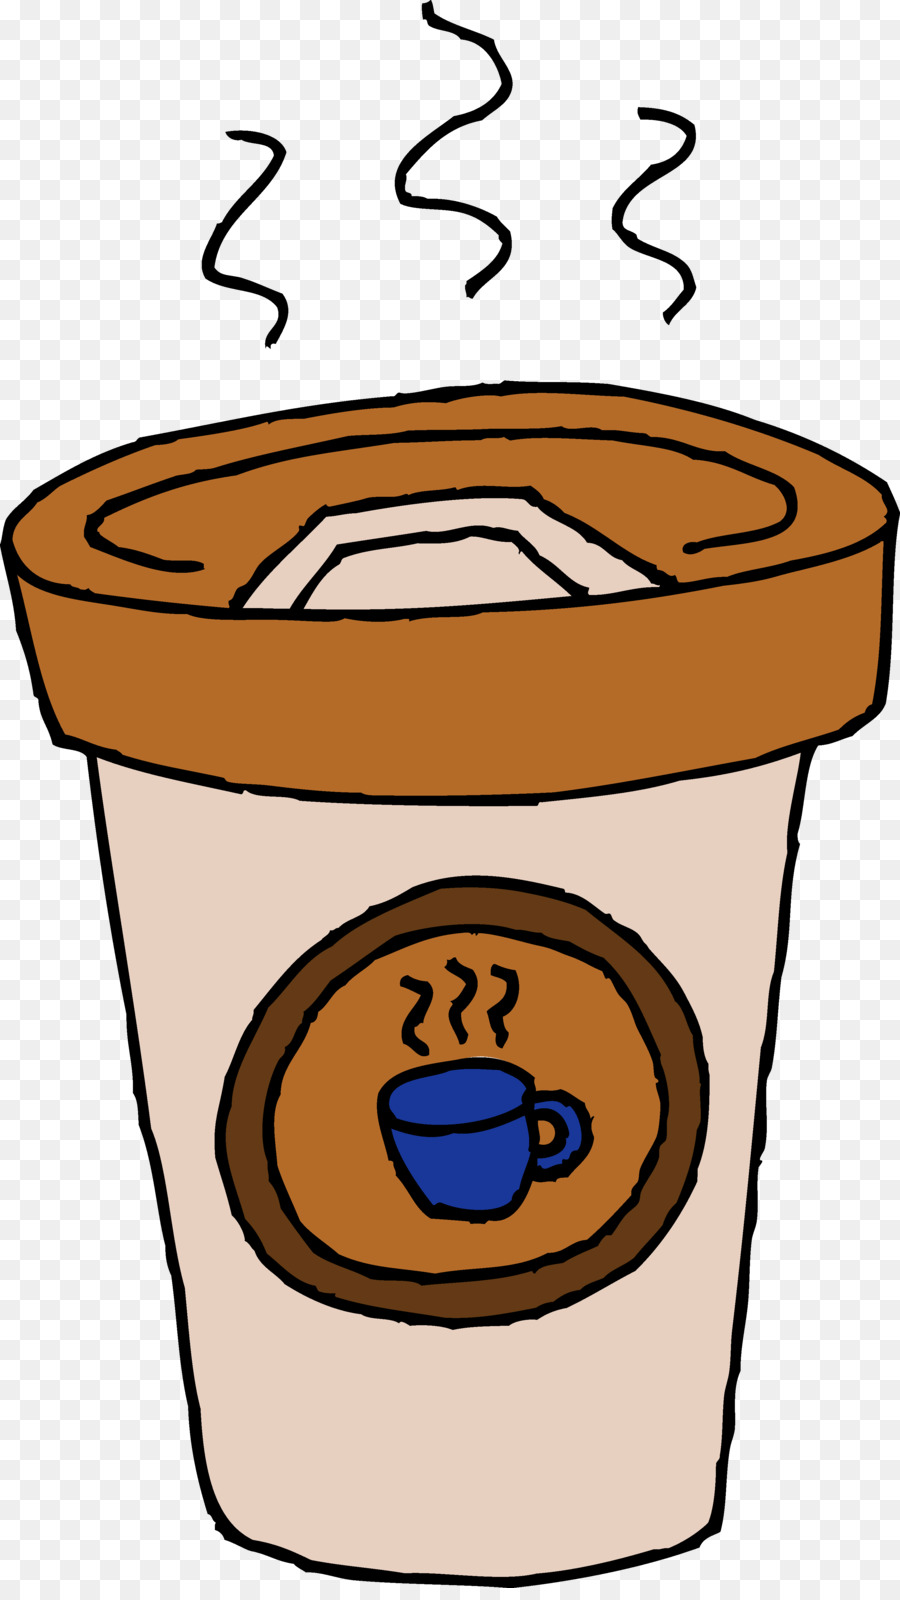 cafe clip art clipart Cafe Coffee Latte